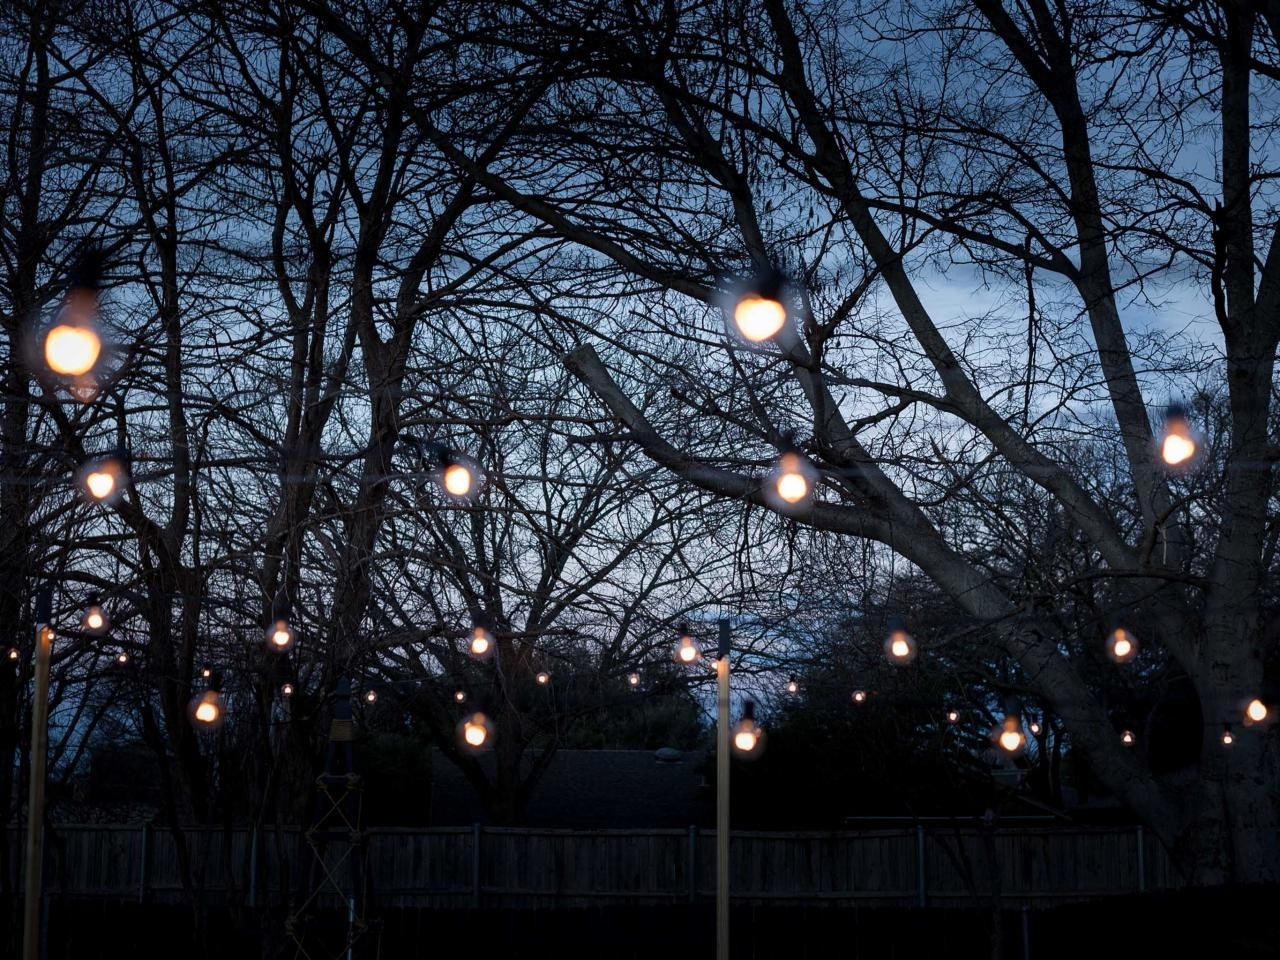 2018 Outdoor Hanging Lights For Trees Throughout Exciting Globe Clear Hanging Garden String Lights Backyard Post Pics (Gallery 15 of 20)